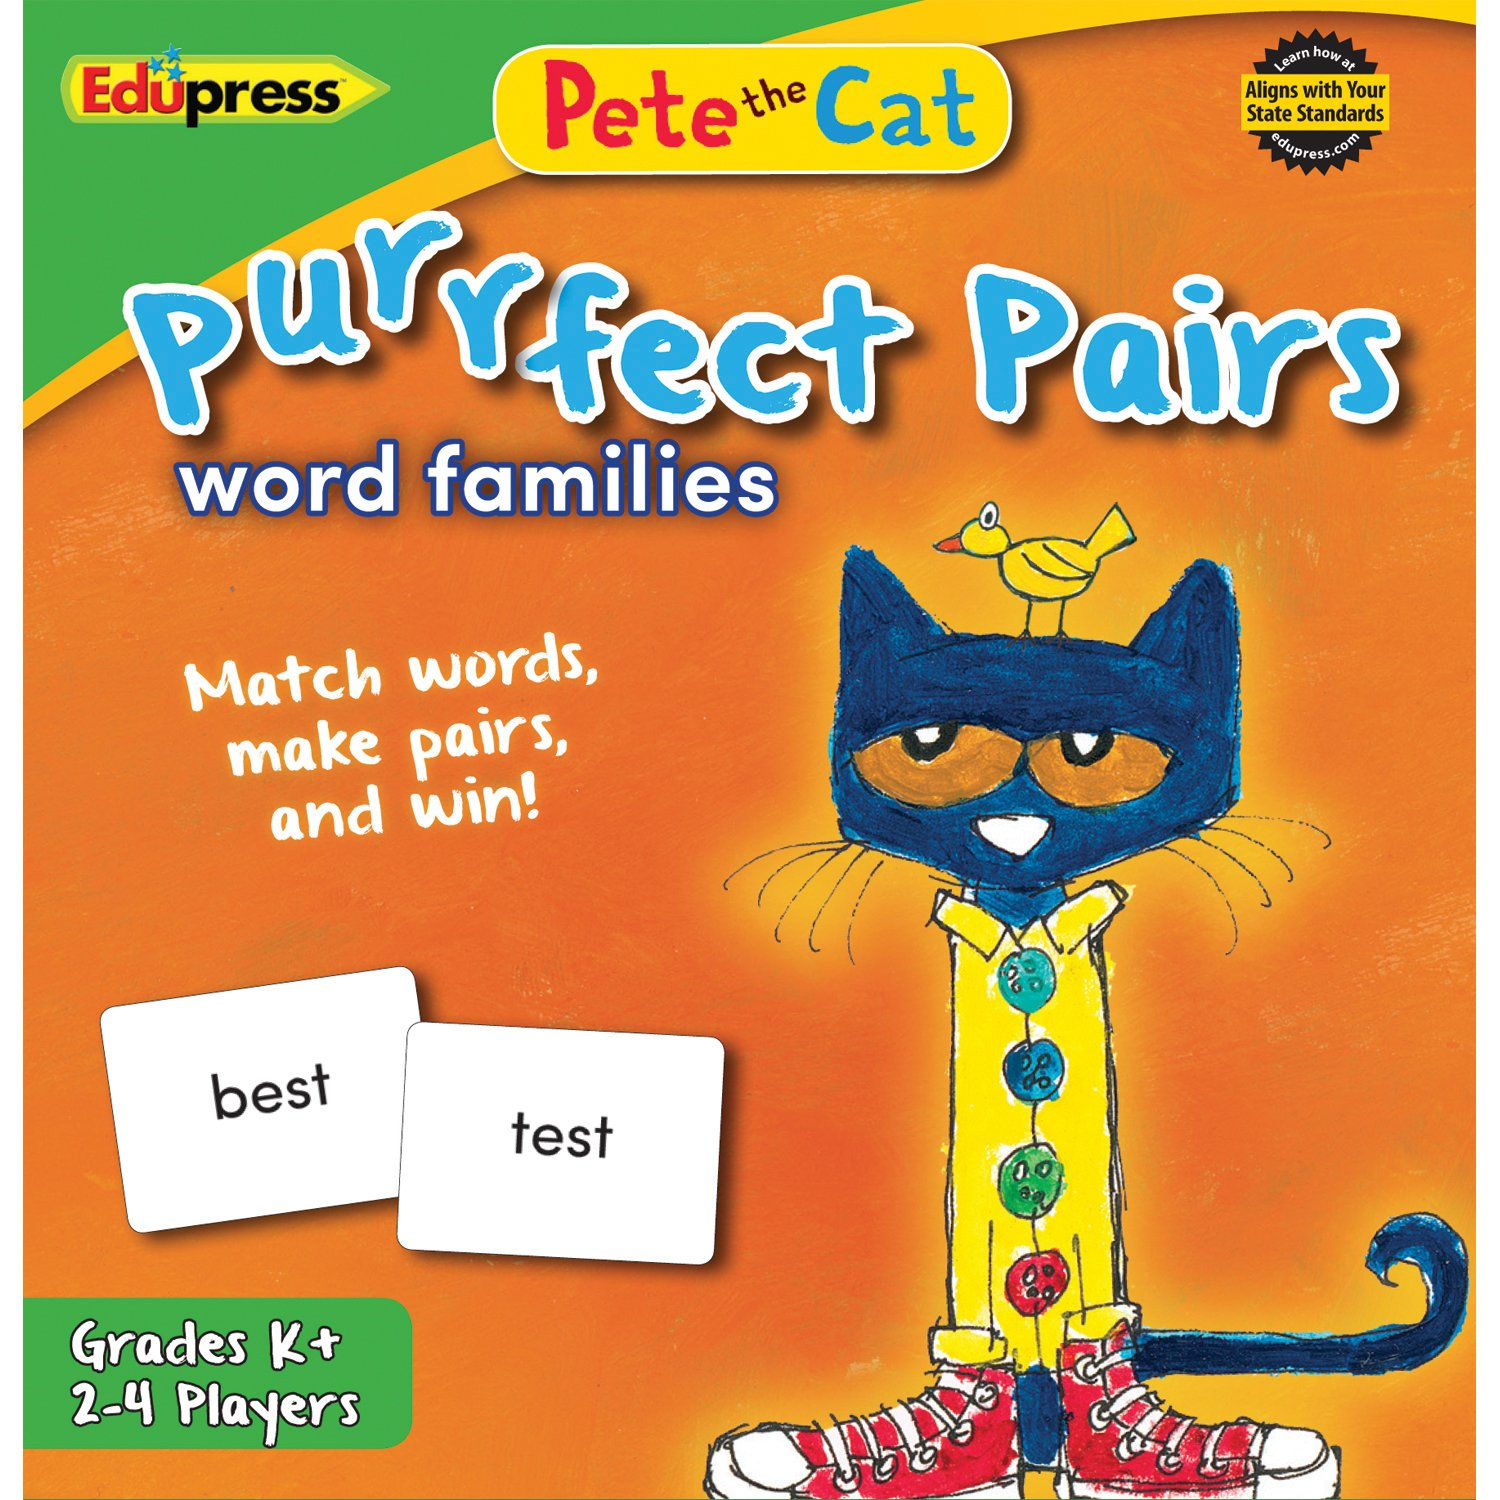 Pete the Cat Purrfect Pairs Game: Word Families (EP-3532) by Edupress (Image #1)